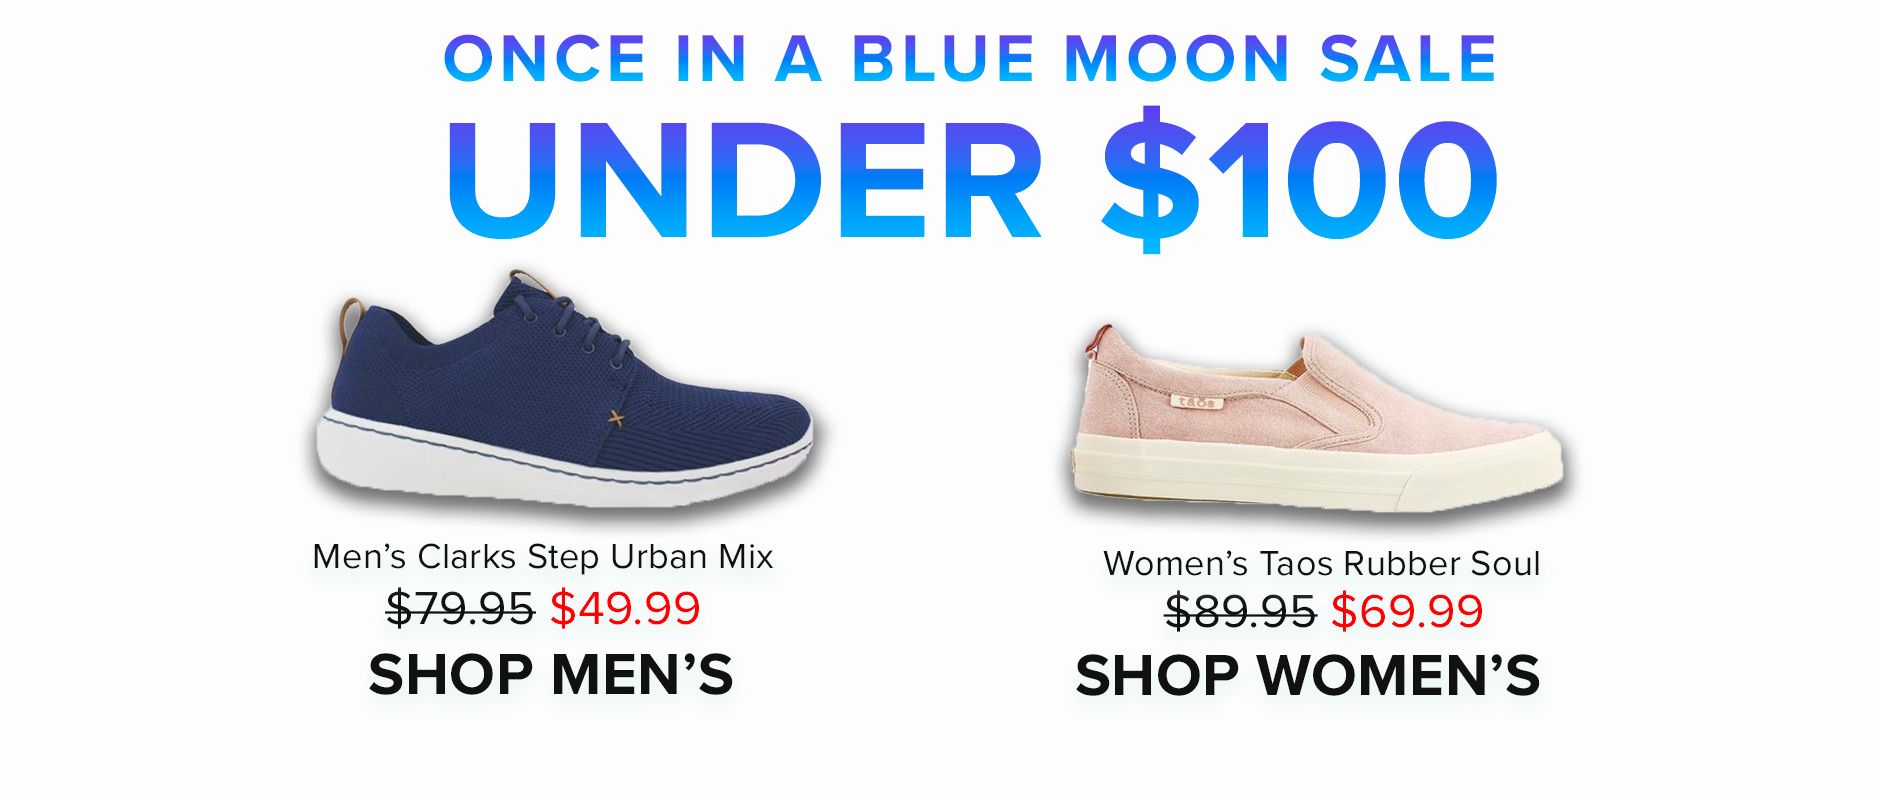 Once in a Blue Moon Sale: UNDER $100